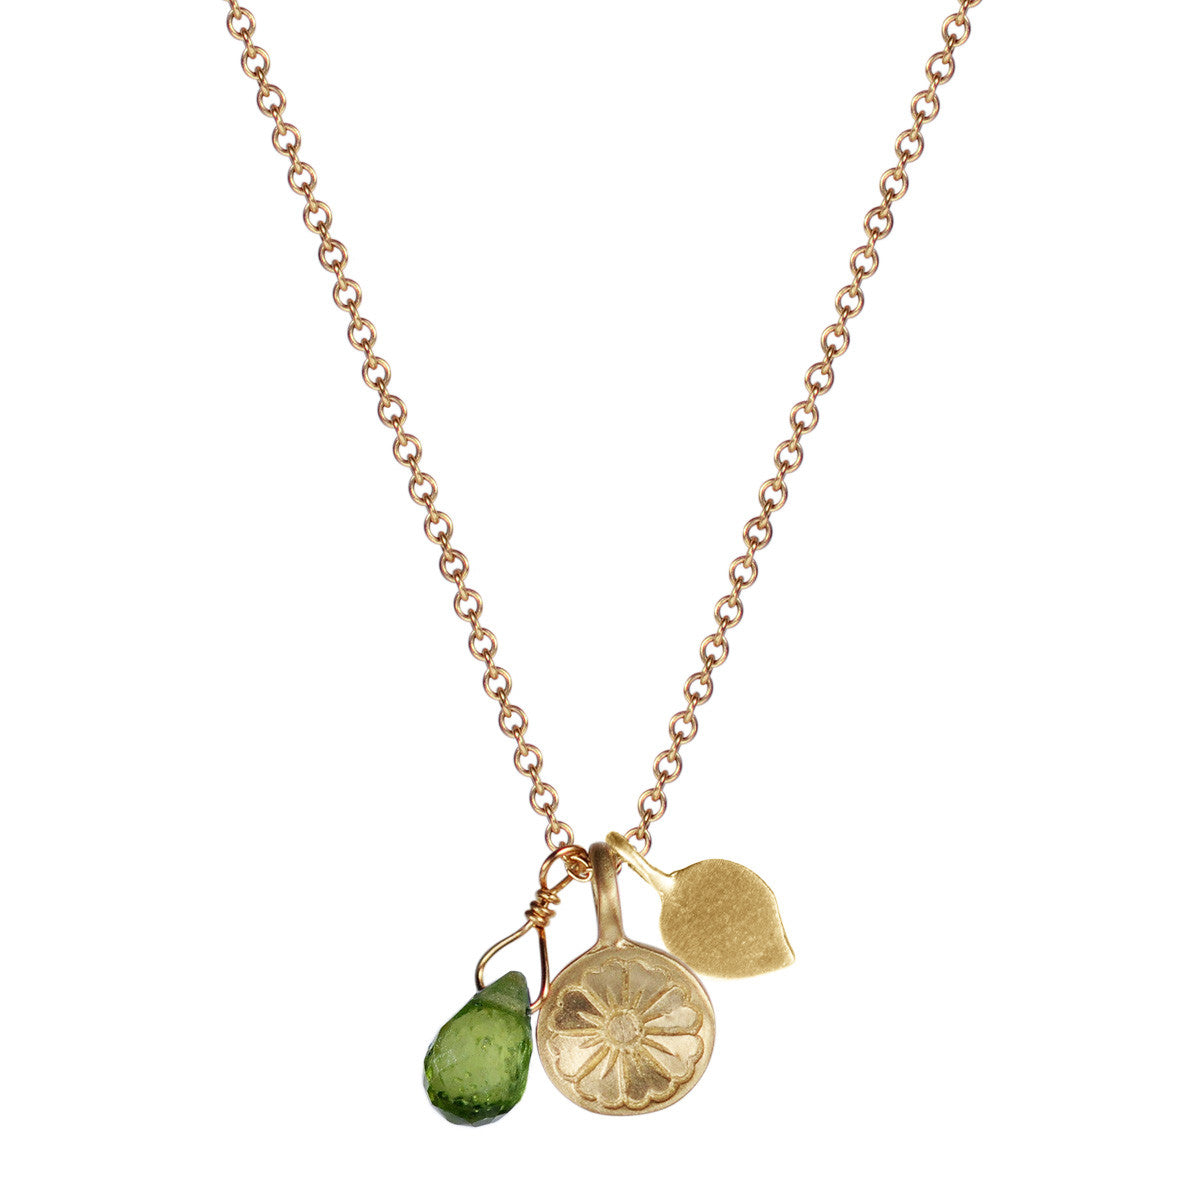 10K Gold Flower Trinket on Chain with Lotus Petal and Vesuvianite Bead